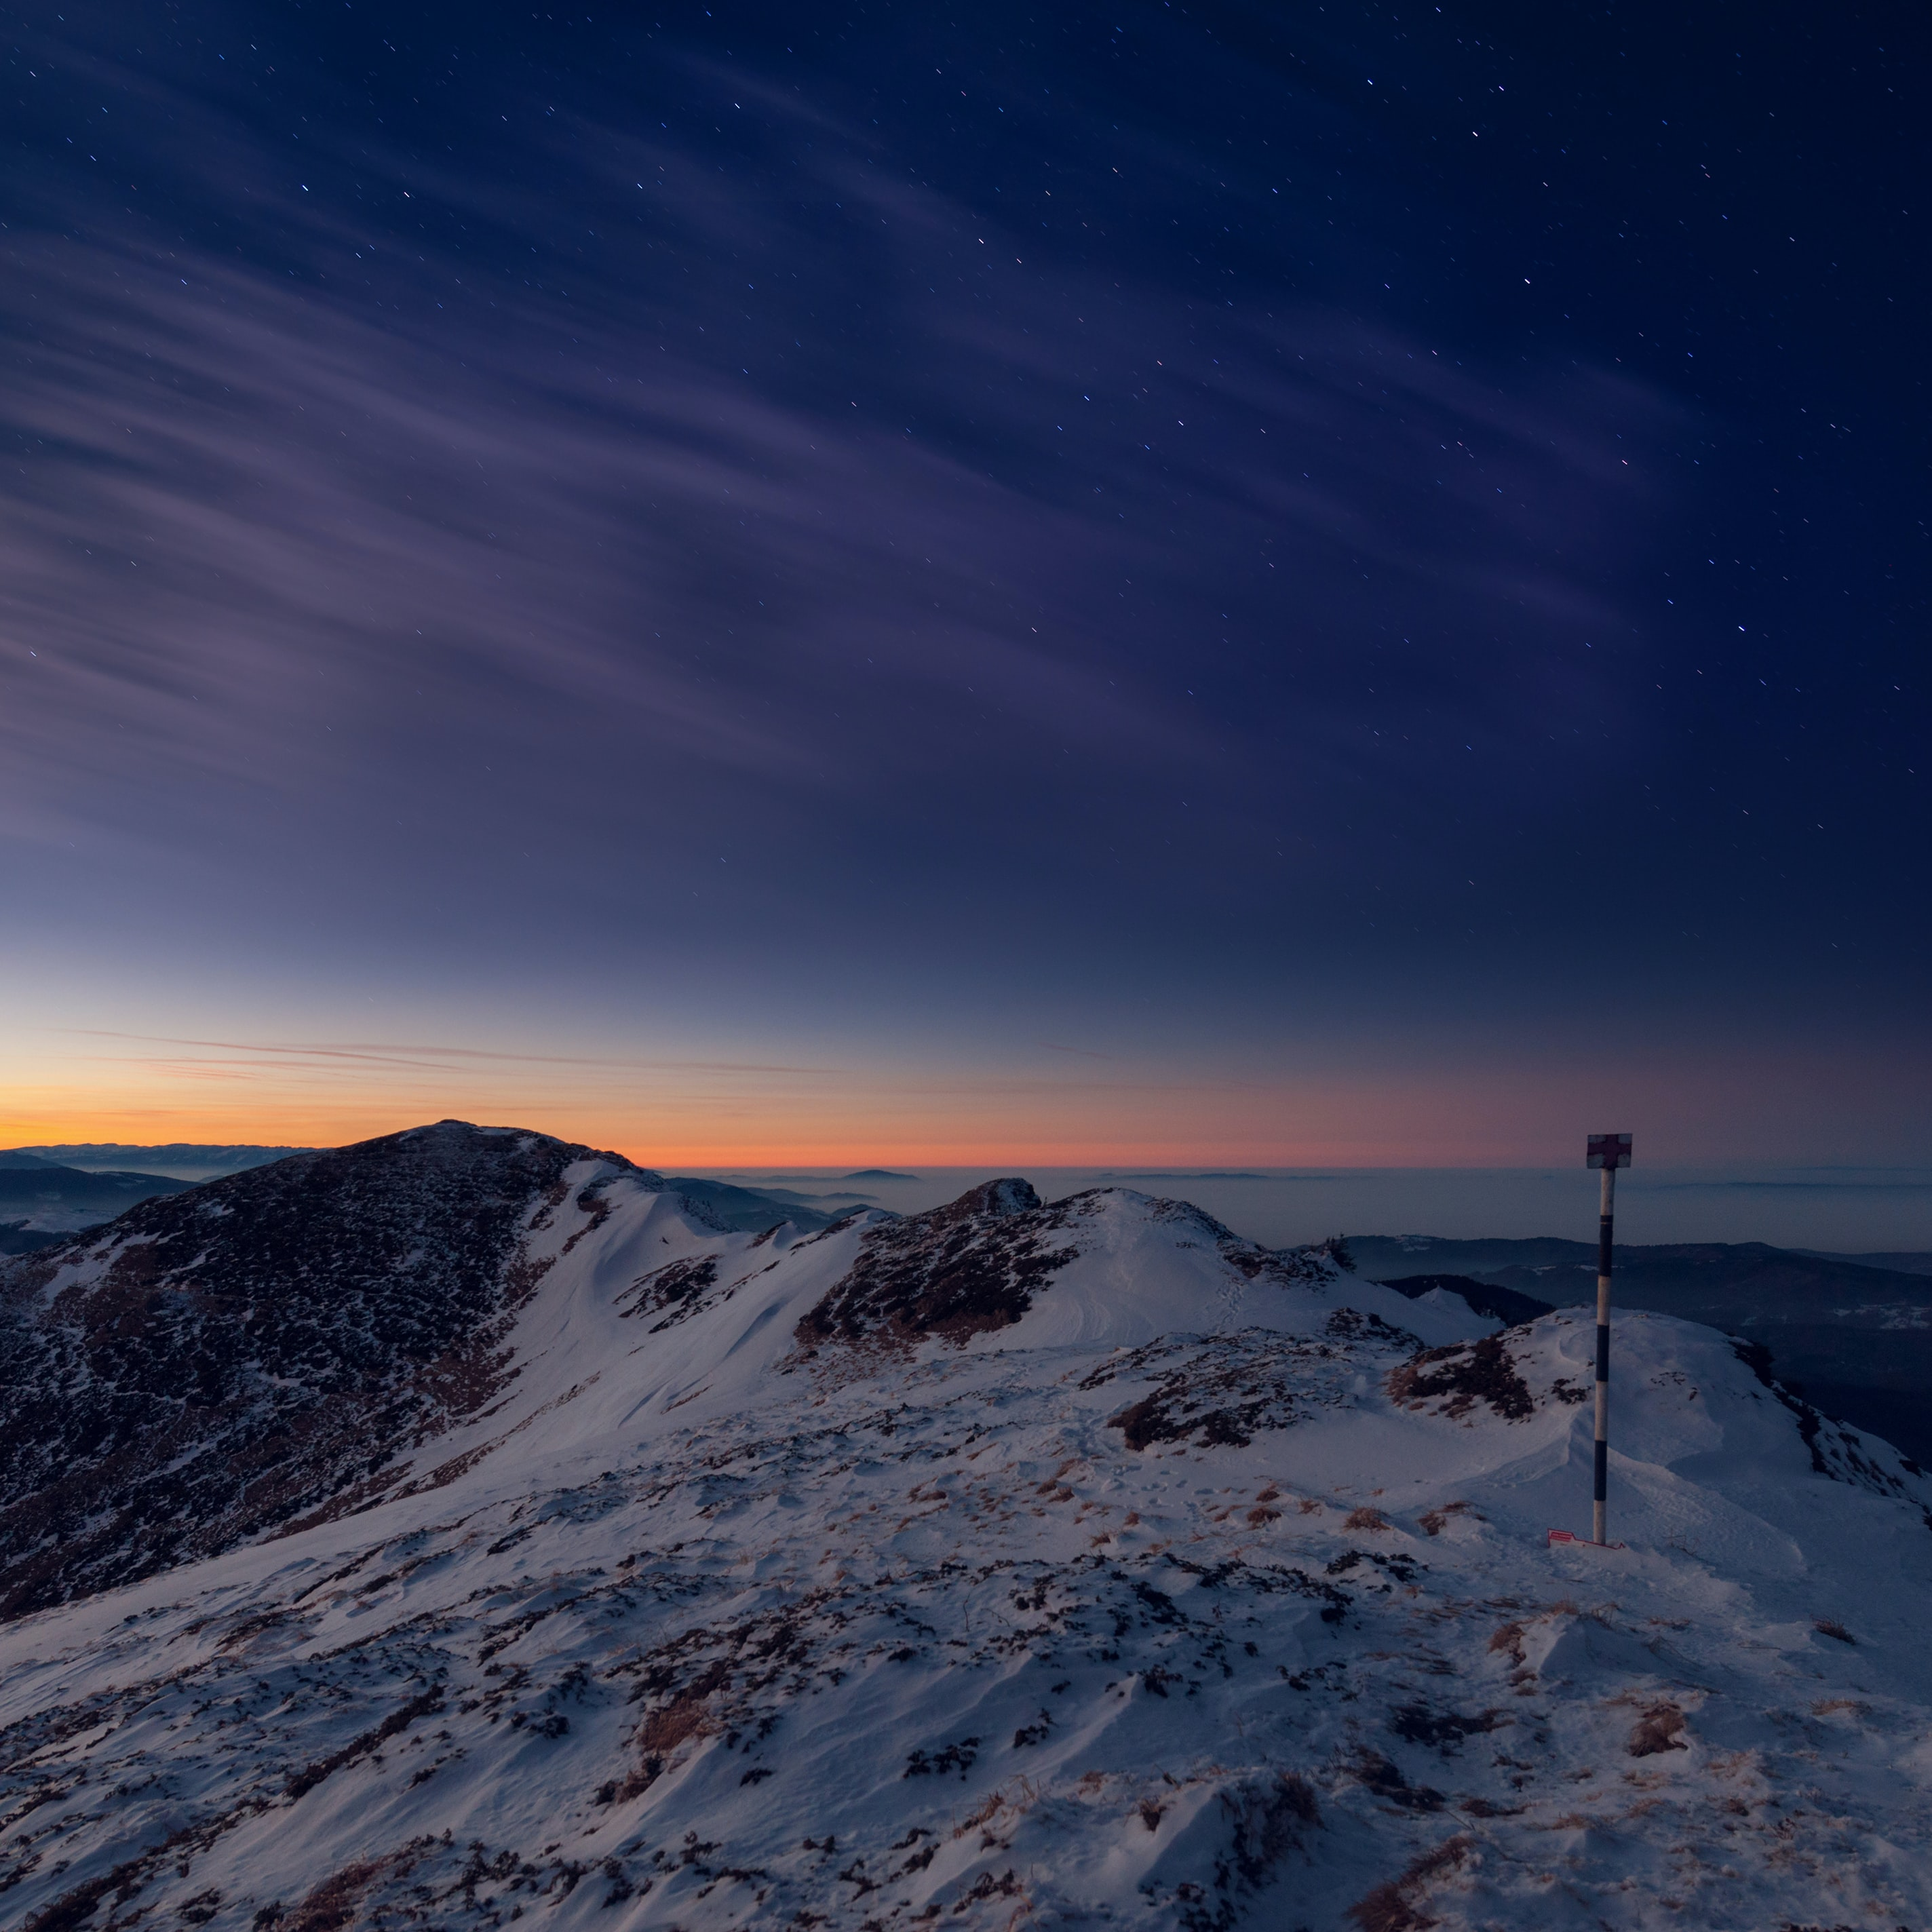 A distant sunset in the horizon as night falls over a snow covered Ciucas Peak